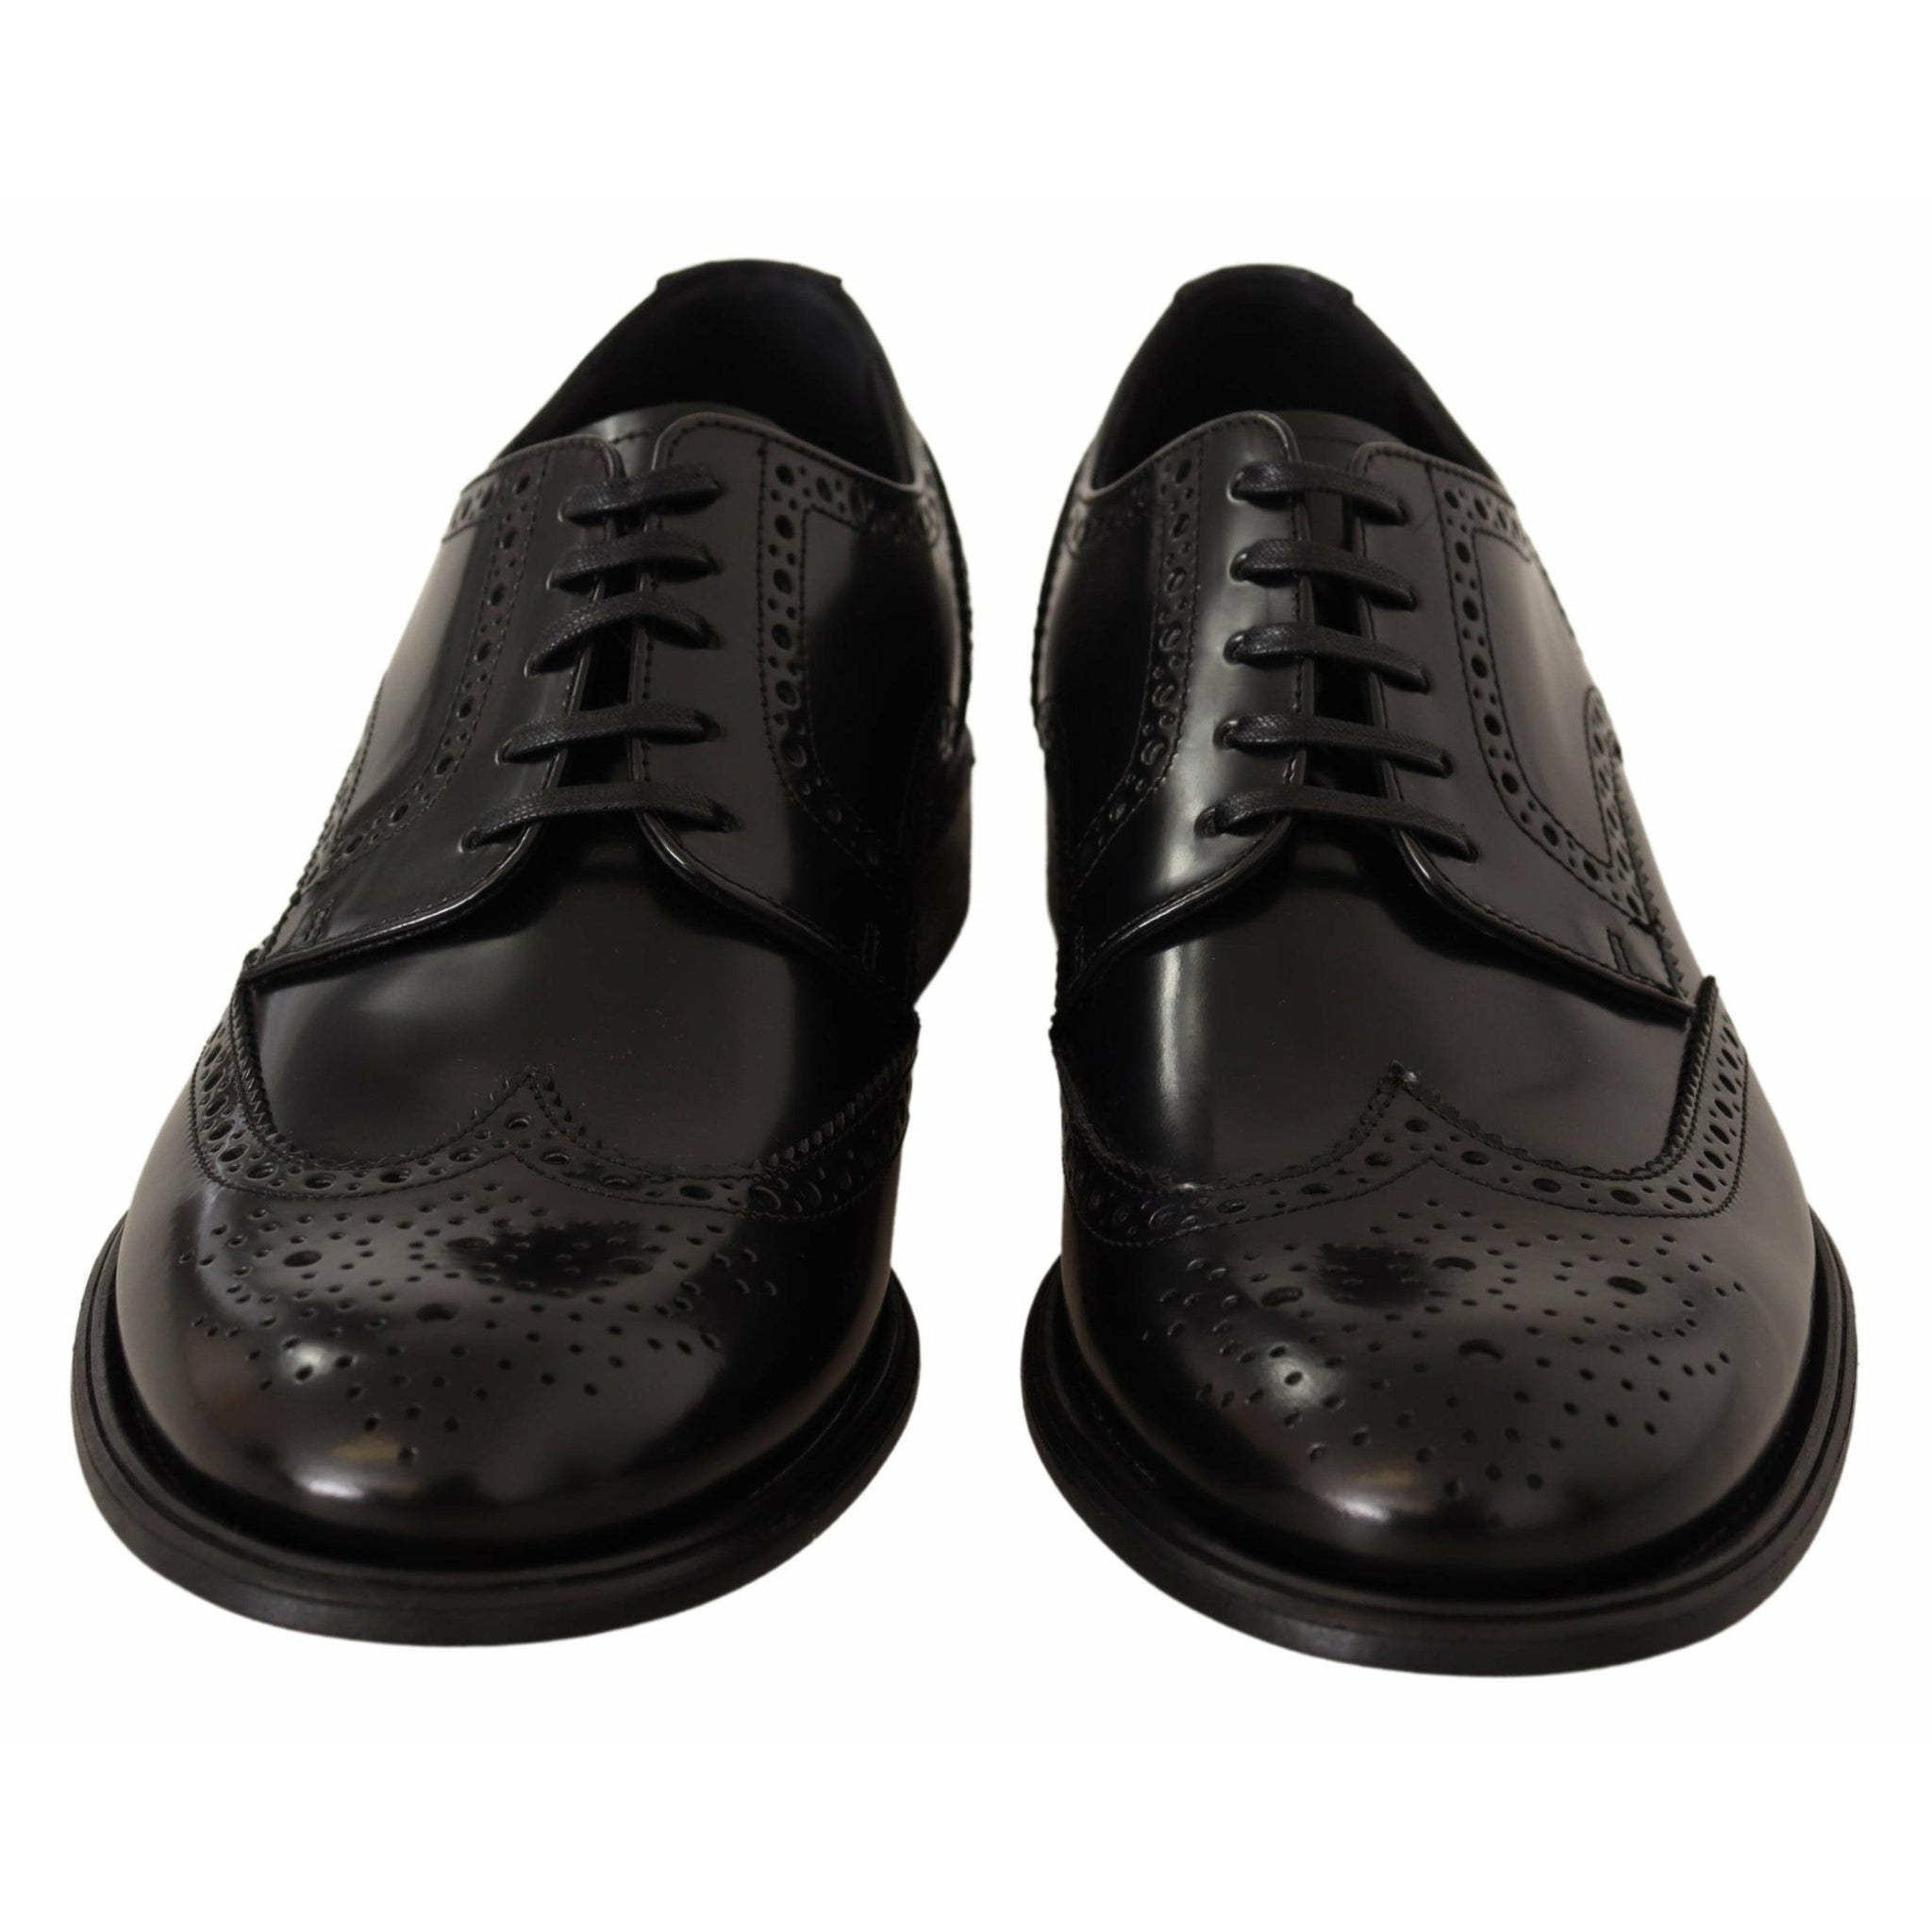 Gold VANDA Crystal Clutch Handbag Shoulder Bag